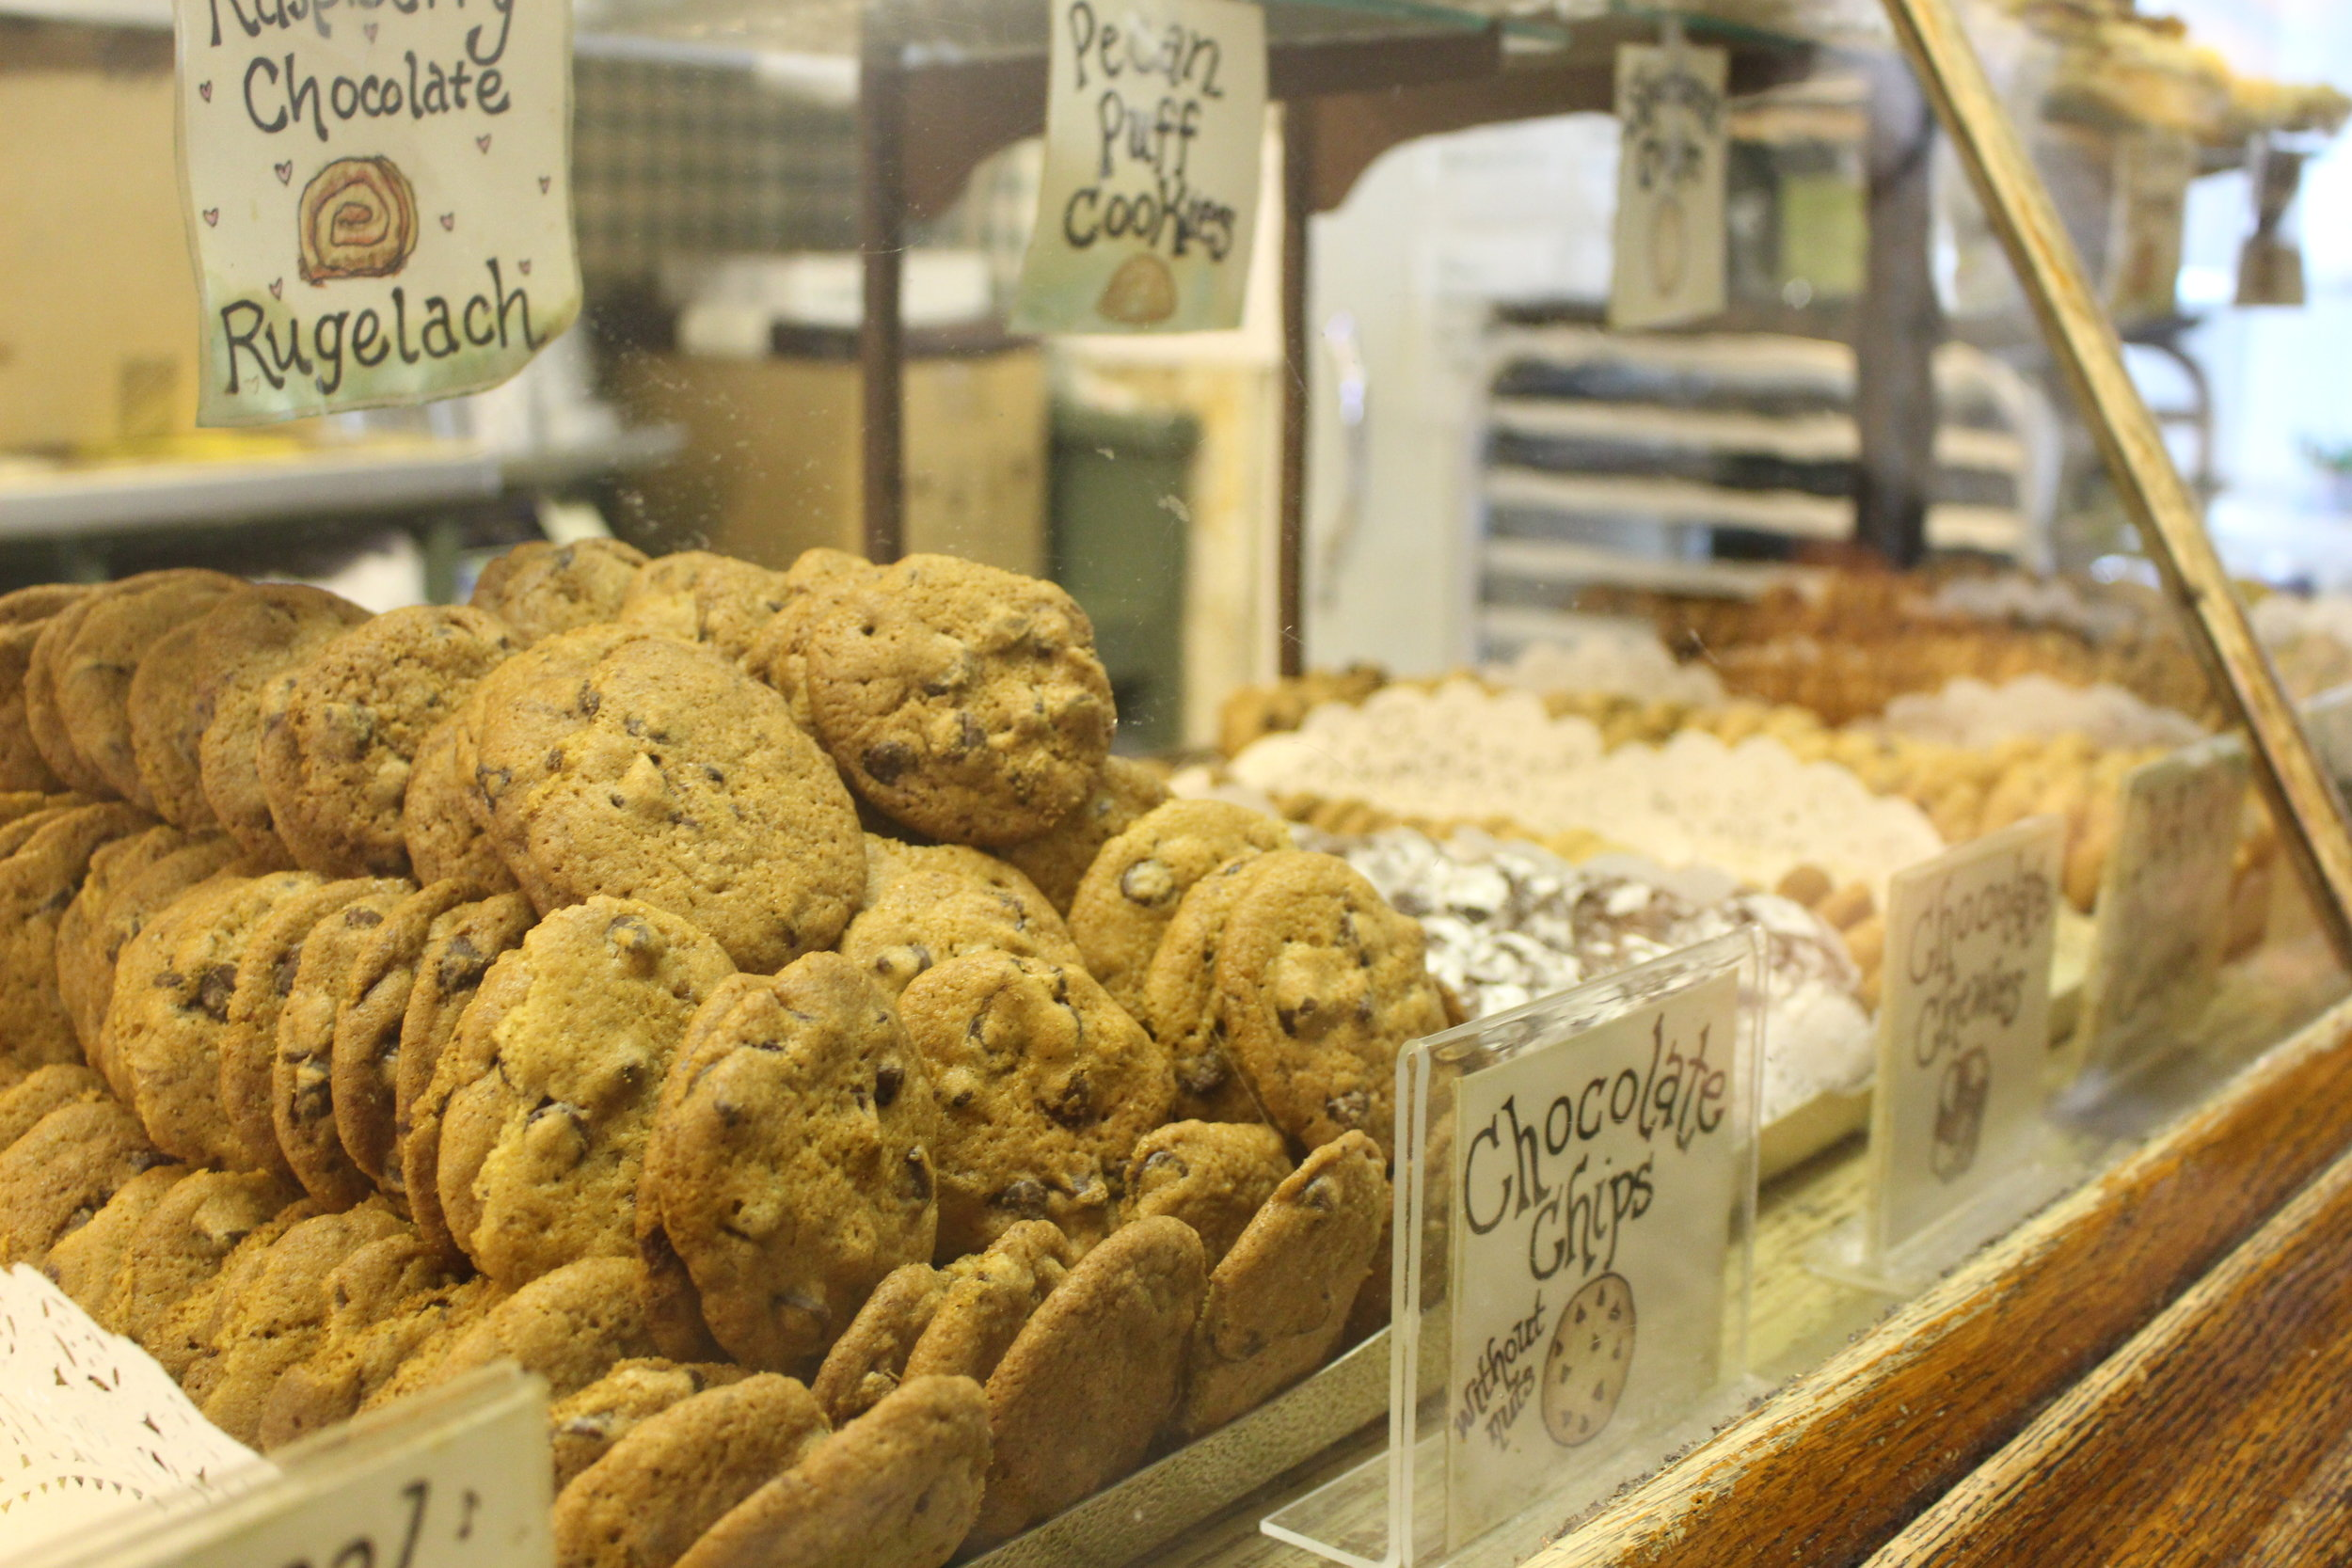 The cookie selection at A Rise Above Bake Shop in Huntington village. Each of the bake shop's offerings are made from scratch.